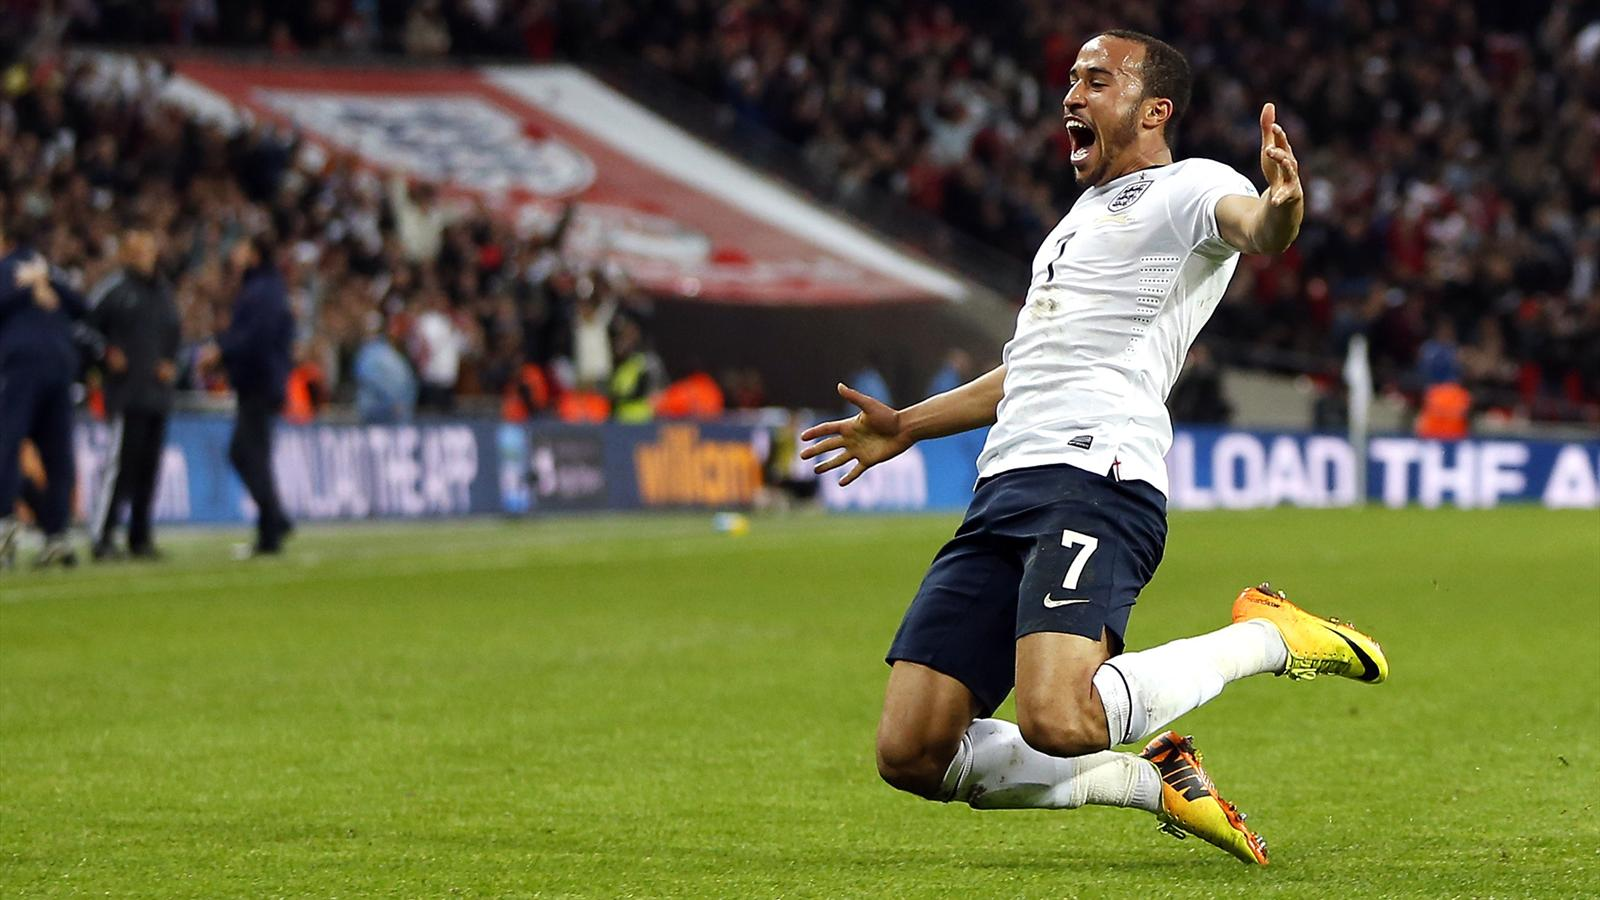 Andros Townsend celebrates scoring his team's third goal during the World Cup 2014 Group H Qualifying football match between England and Montenegro at Wembley Stadium (AFP)